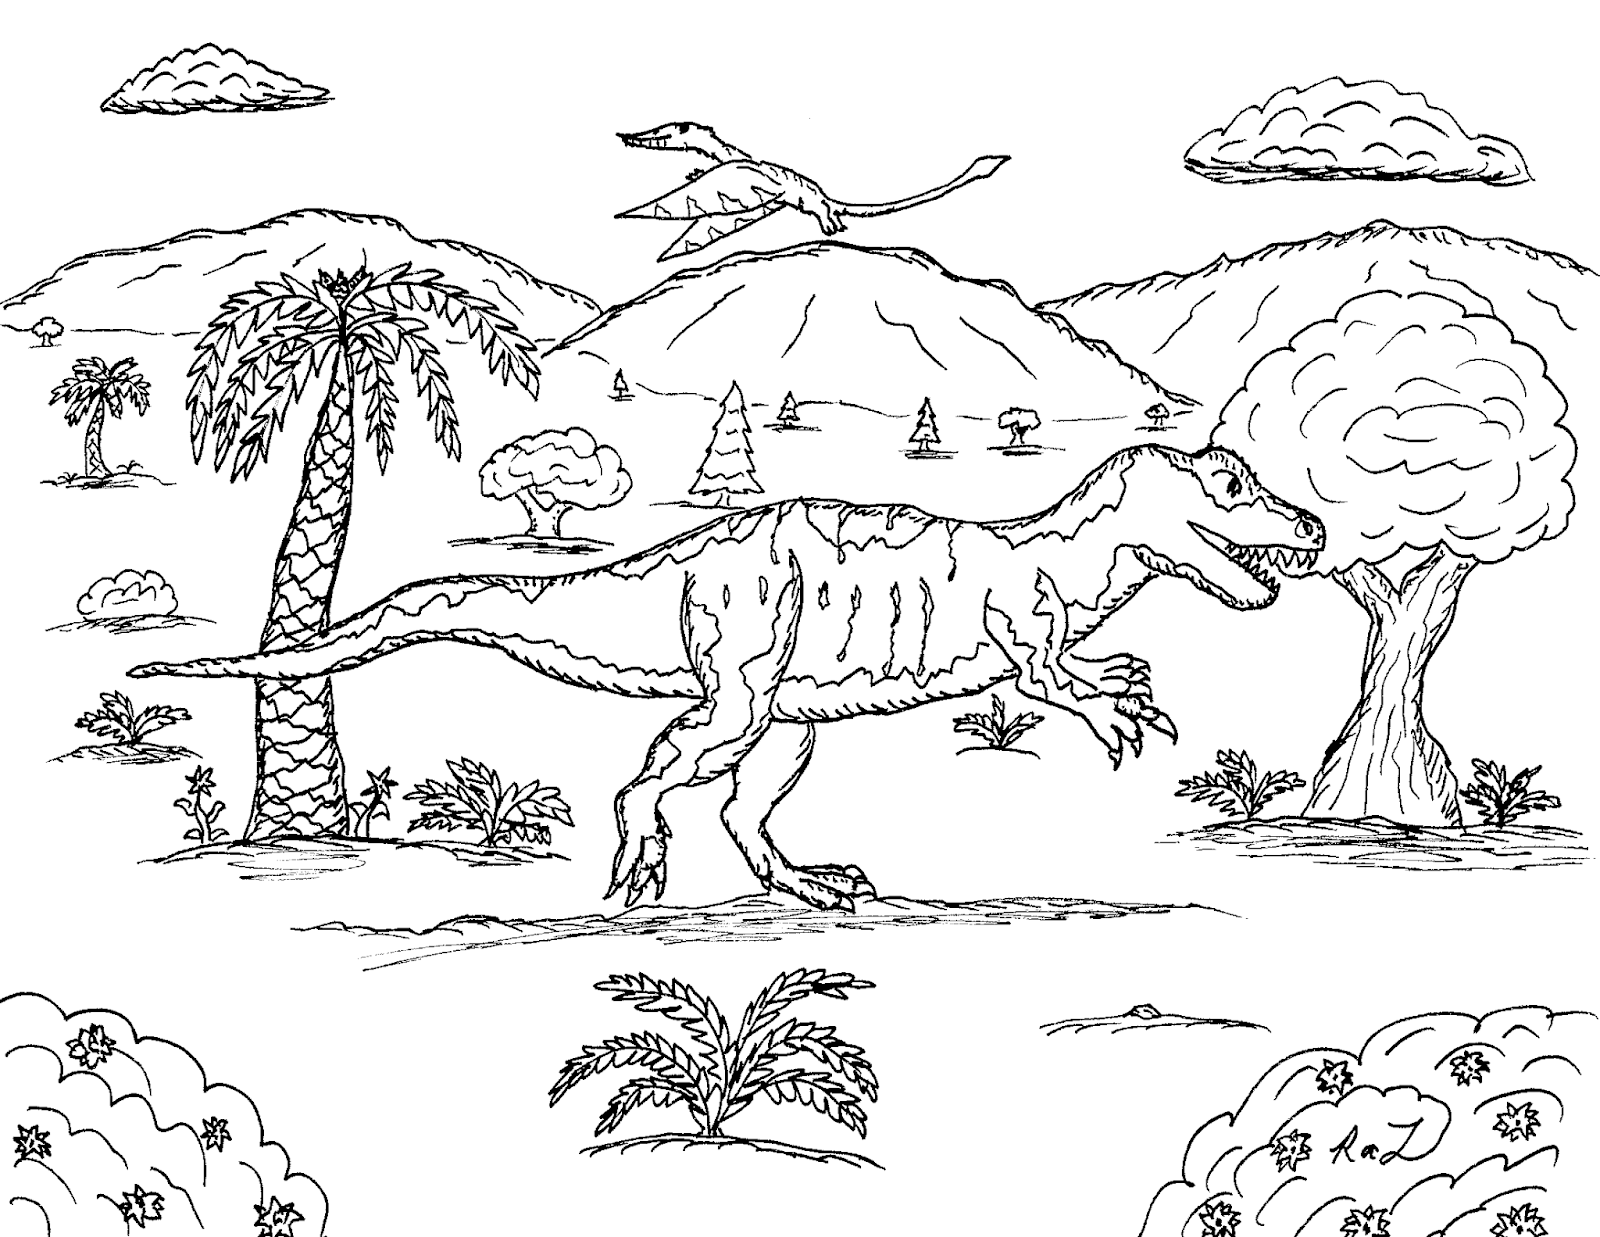 Robin\'s Great Coloring Pages: Big Al the Allosaurus with Rhamphorhynchus